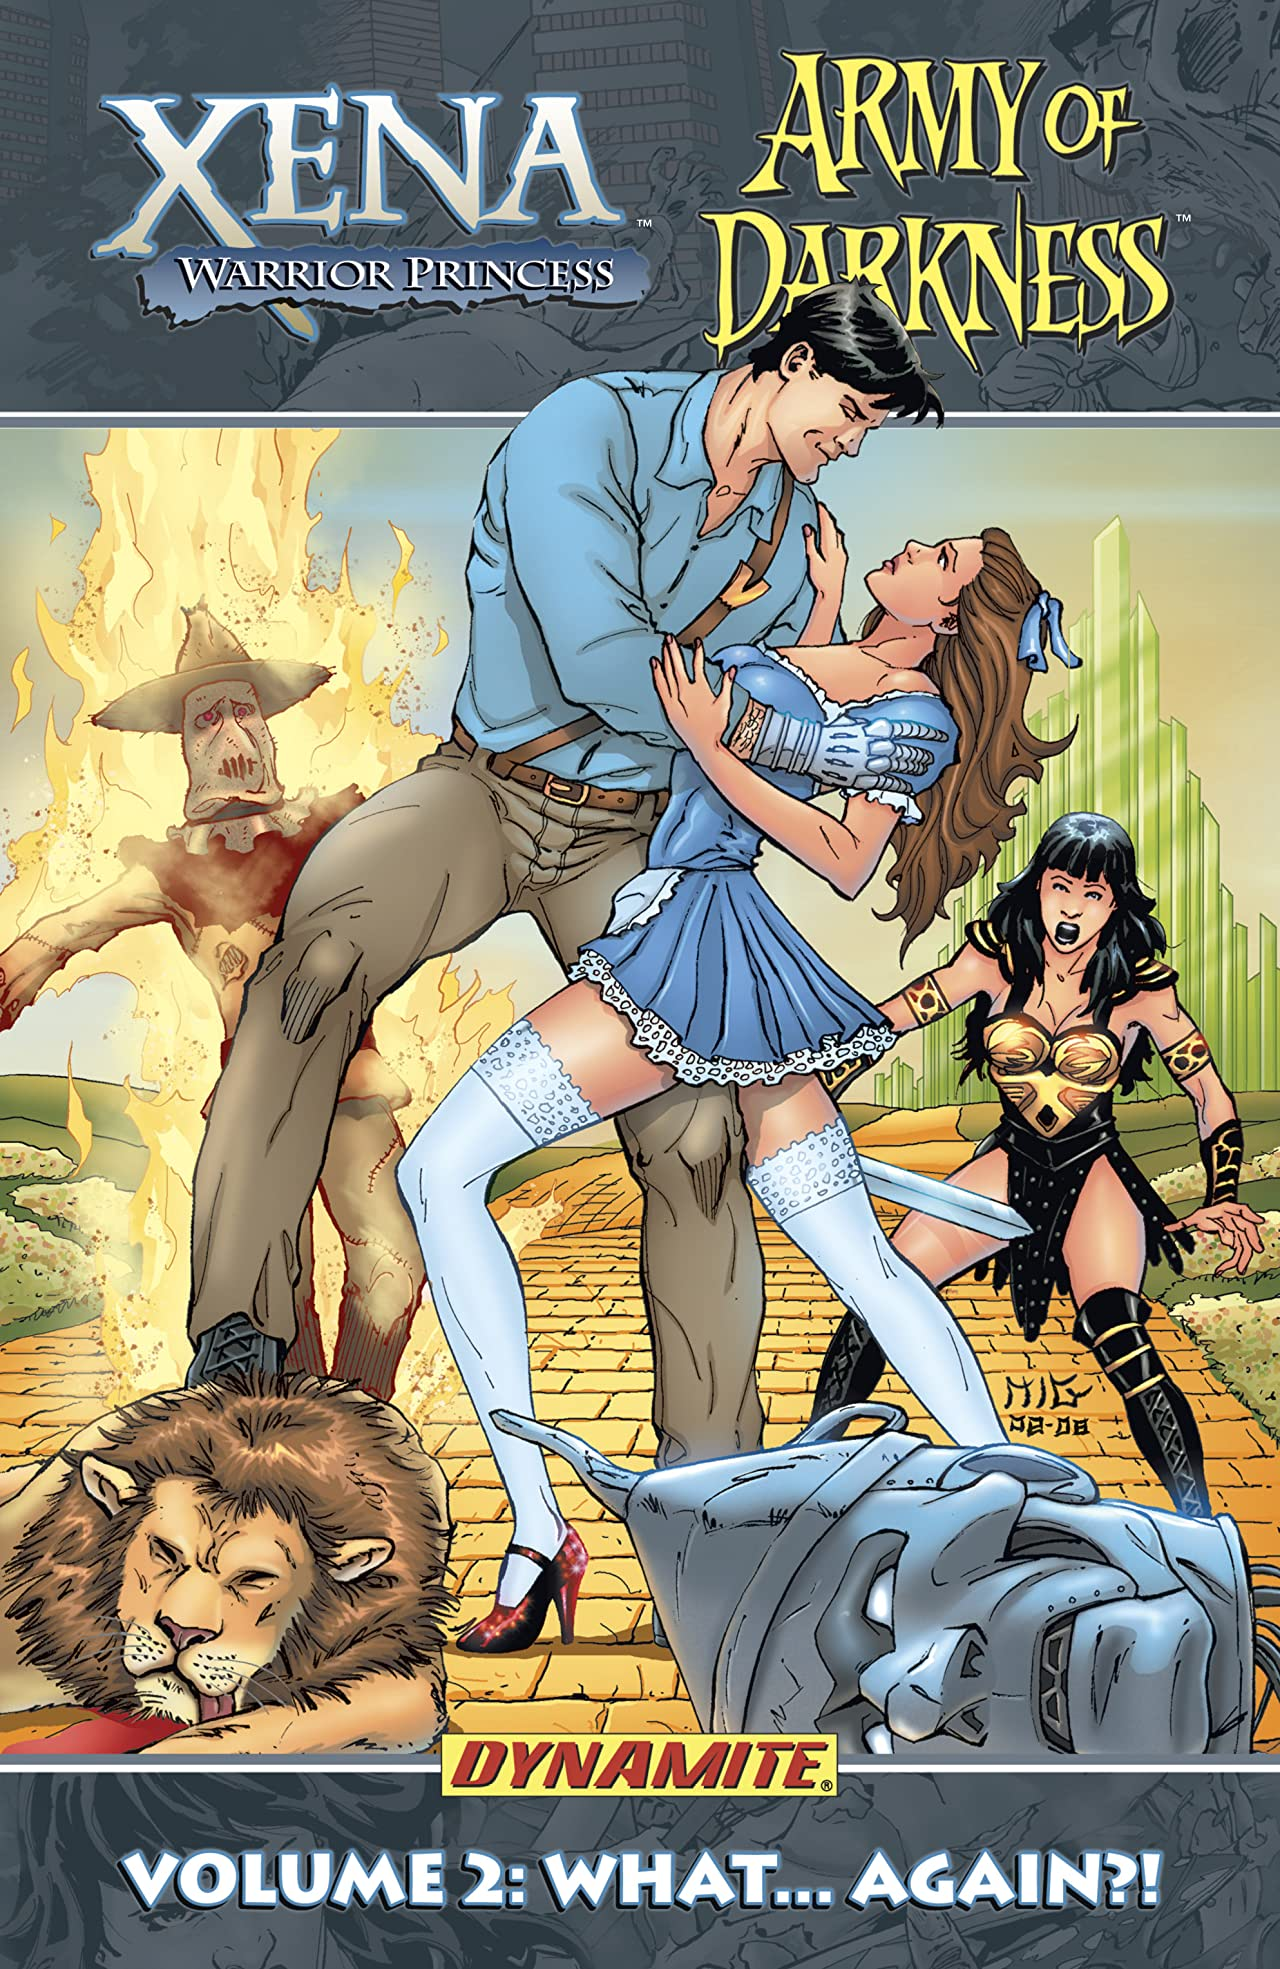 Army of Darkness Xena Warrior Princess Vol. 2: What... Again?!